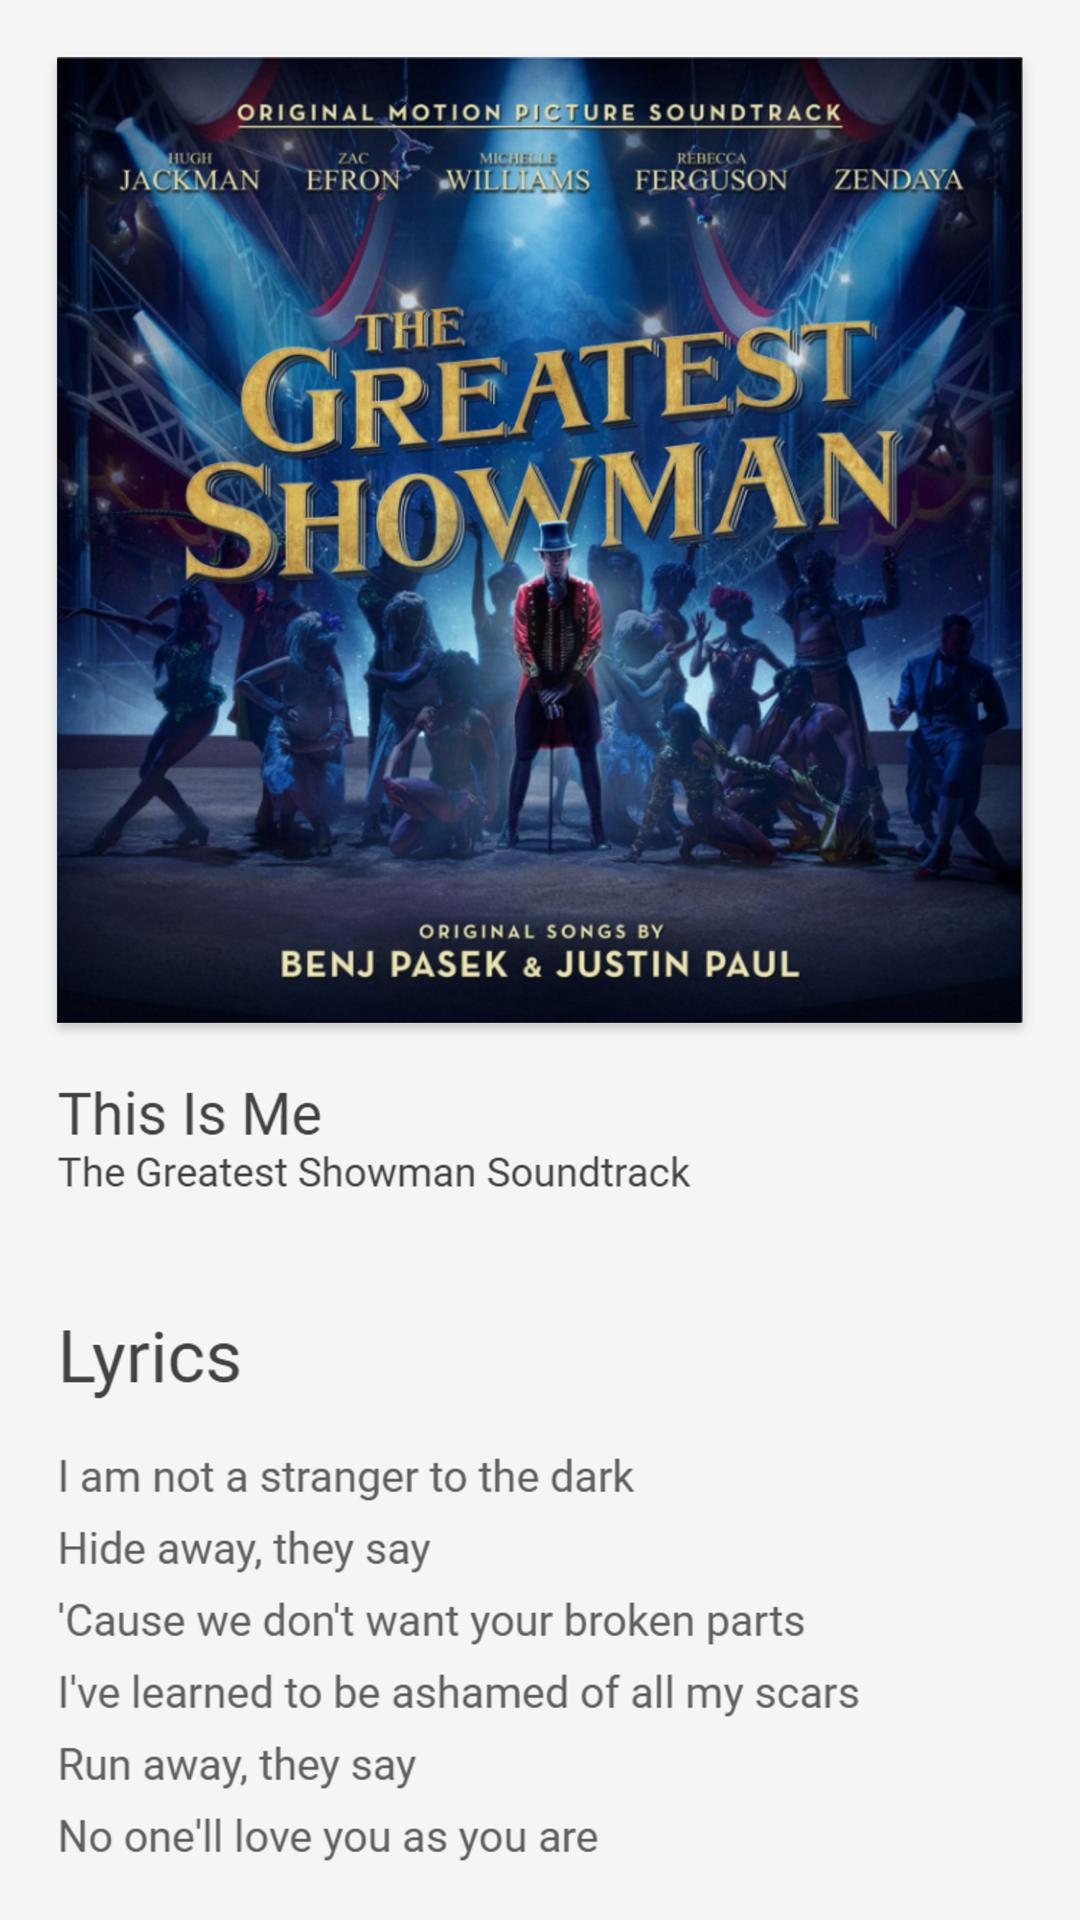 This is me the greatest showman lyrics